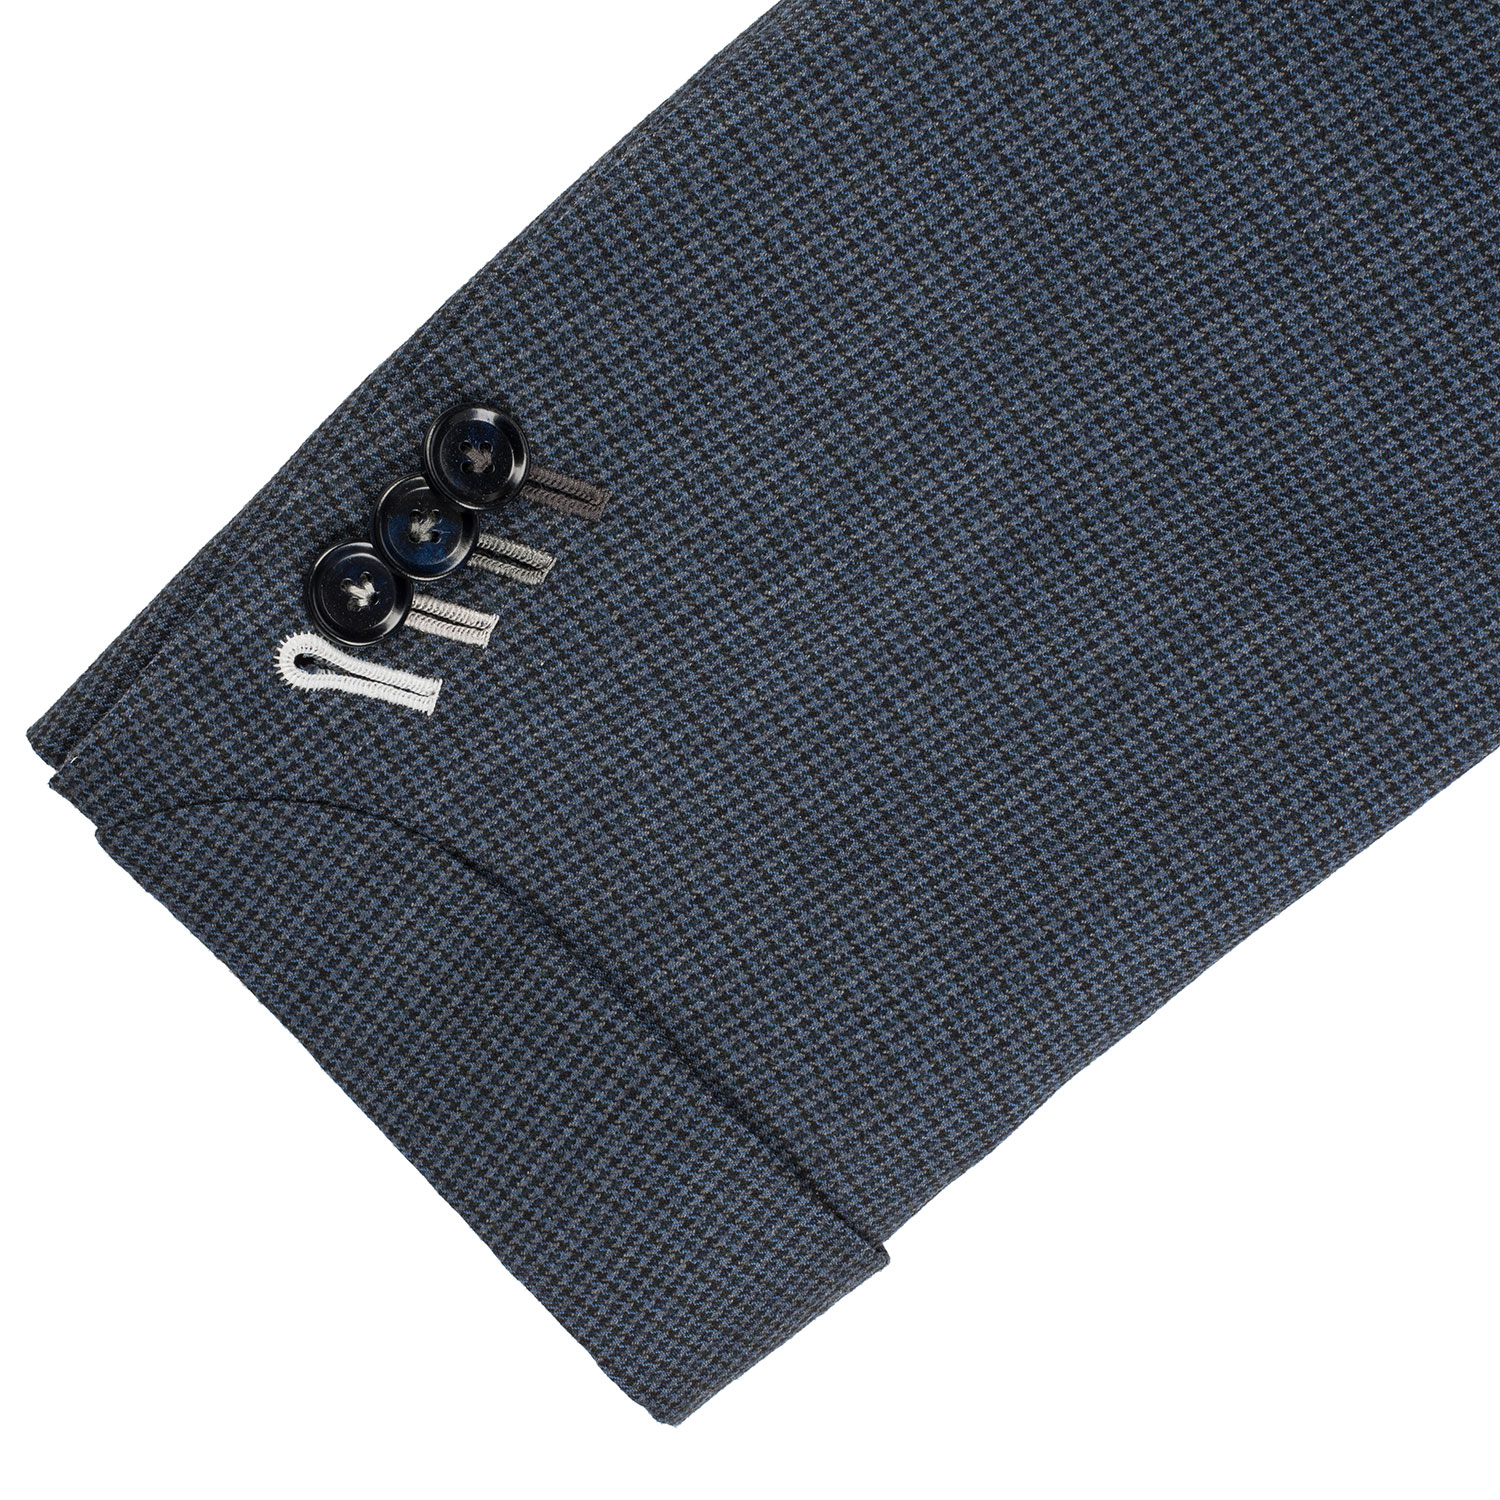 Functional Sleeve Button with Natural Horn buttons